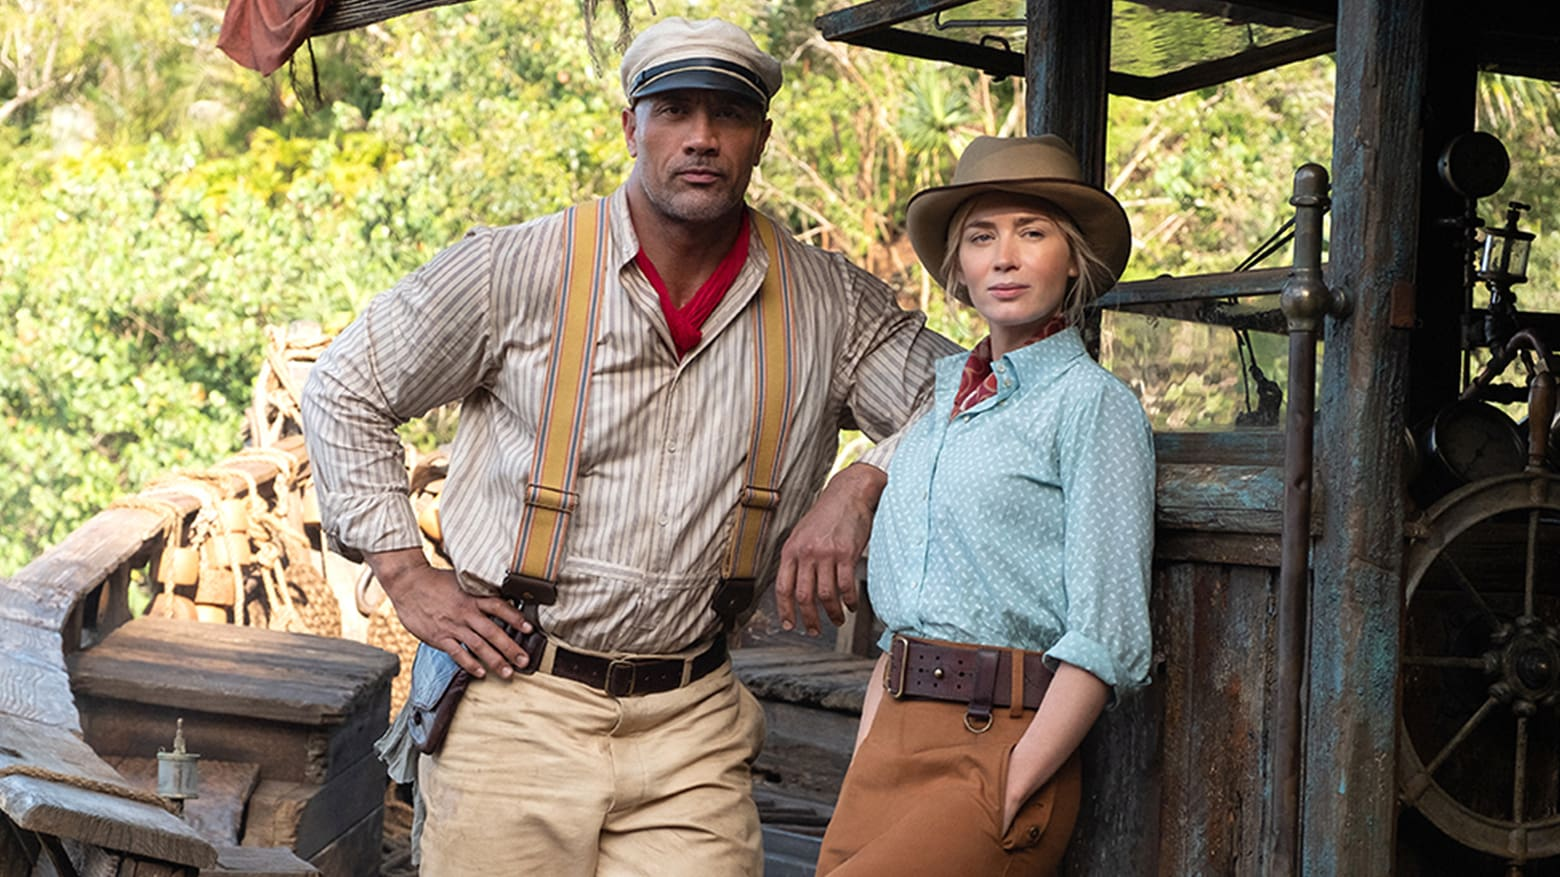 Jungle Cruise, de Disney estrenará en cines y en Disney+ a través de Premier Access, mira el video de Dwayne Johnson con el anuncio.